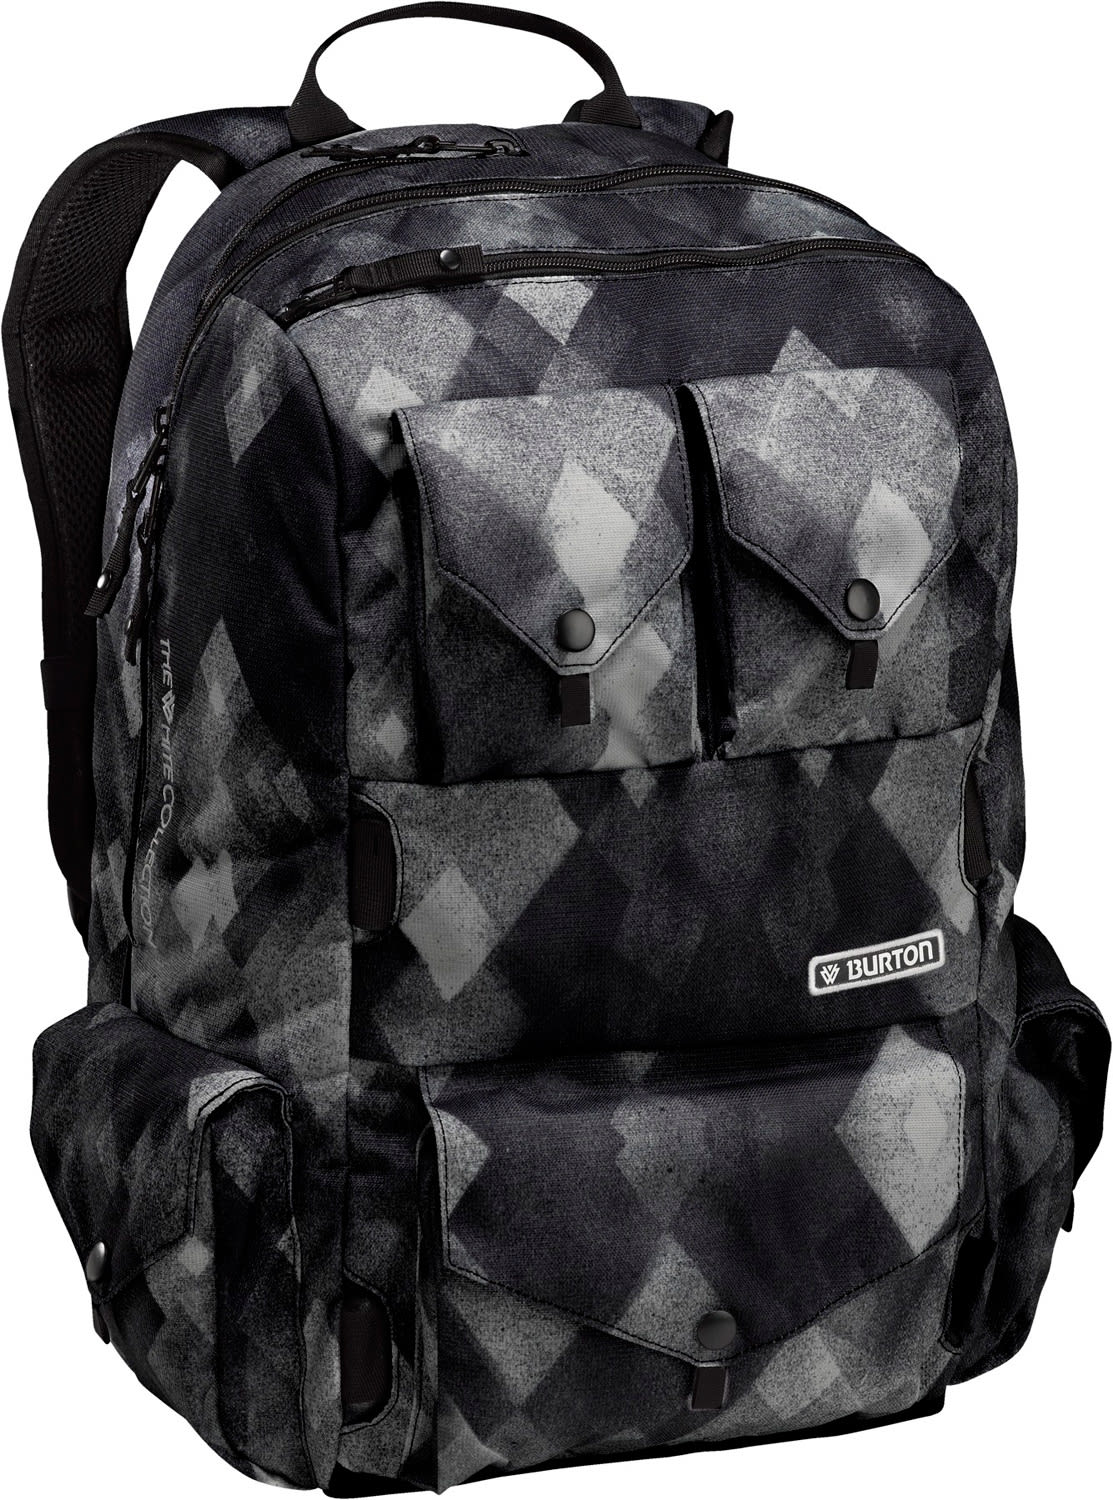 Burton The White Collection Backpack Diamond Watercolor